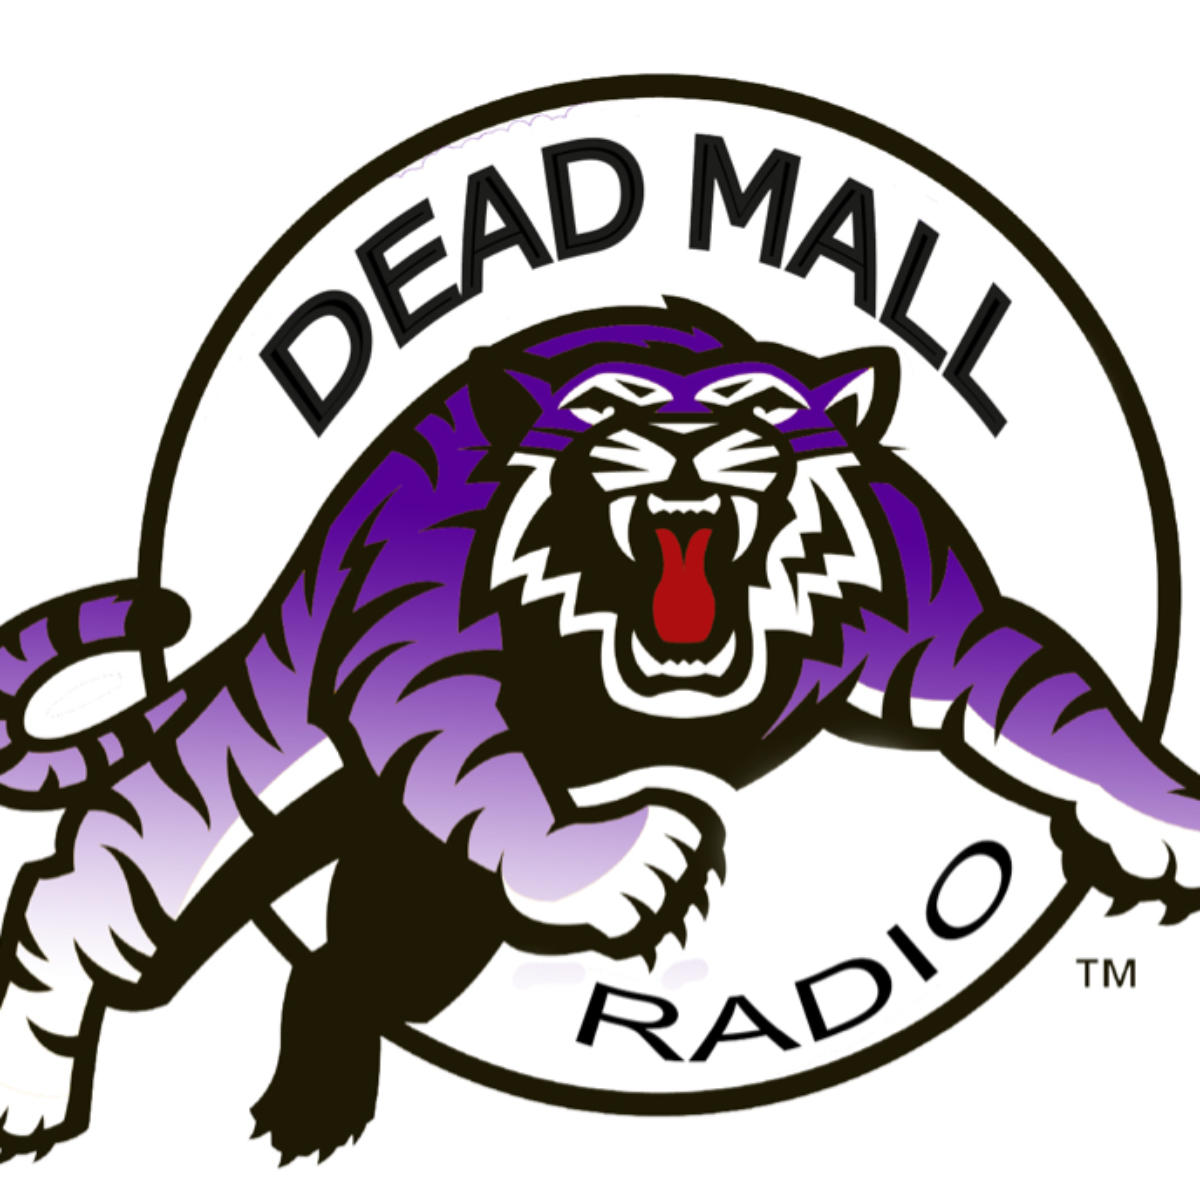 DEAD MALL RADIO show on Radio Relativa